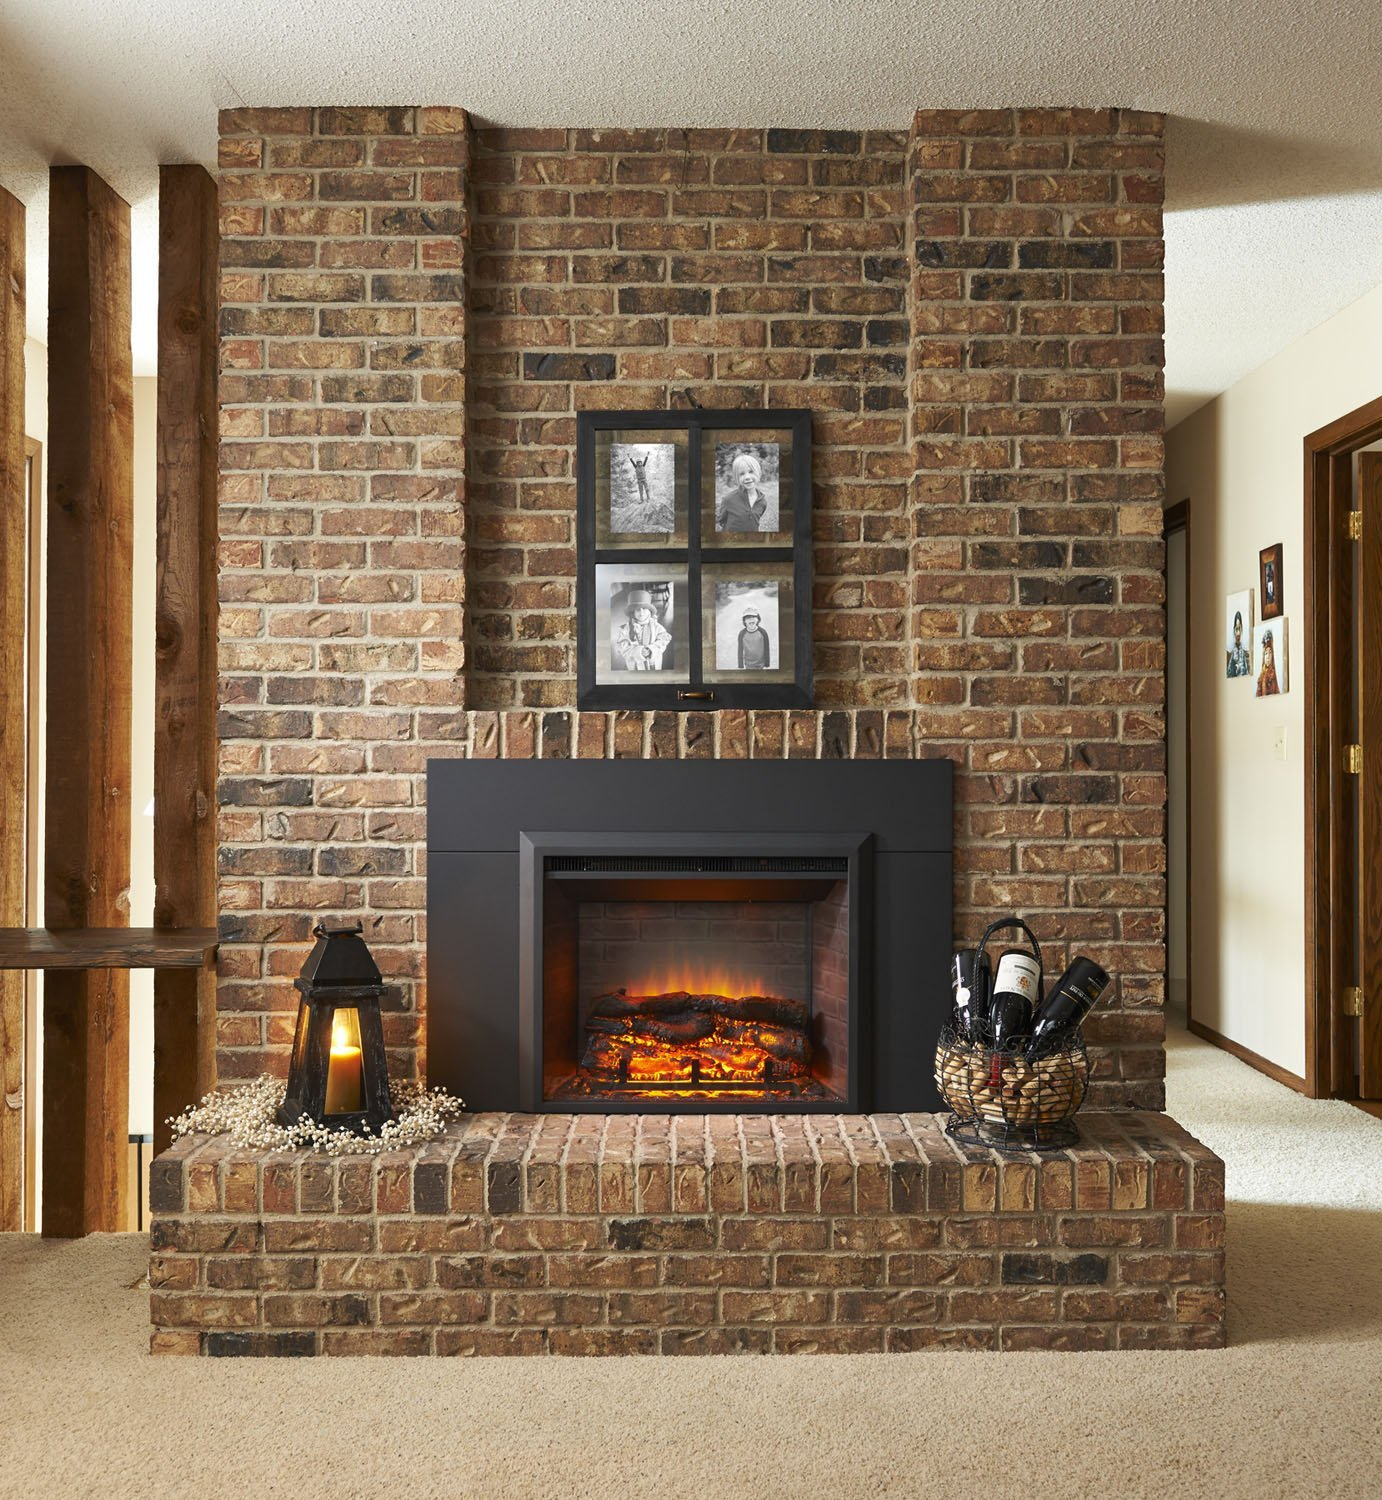 Cottage Decor Together With Raised Hearth Best Stone For Fireplace